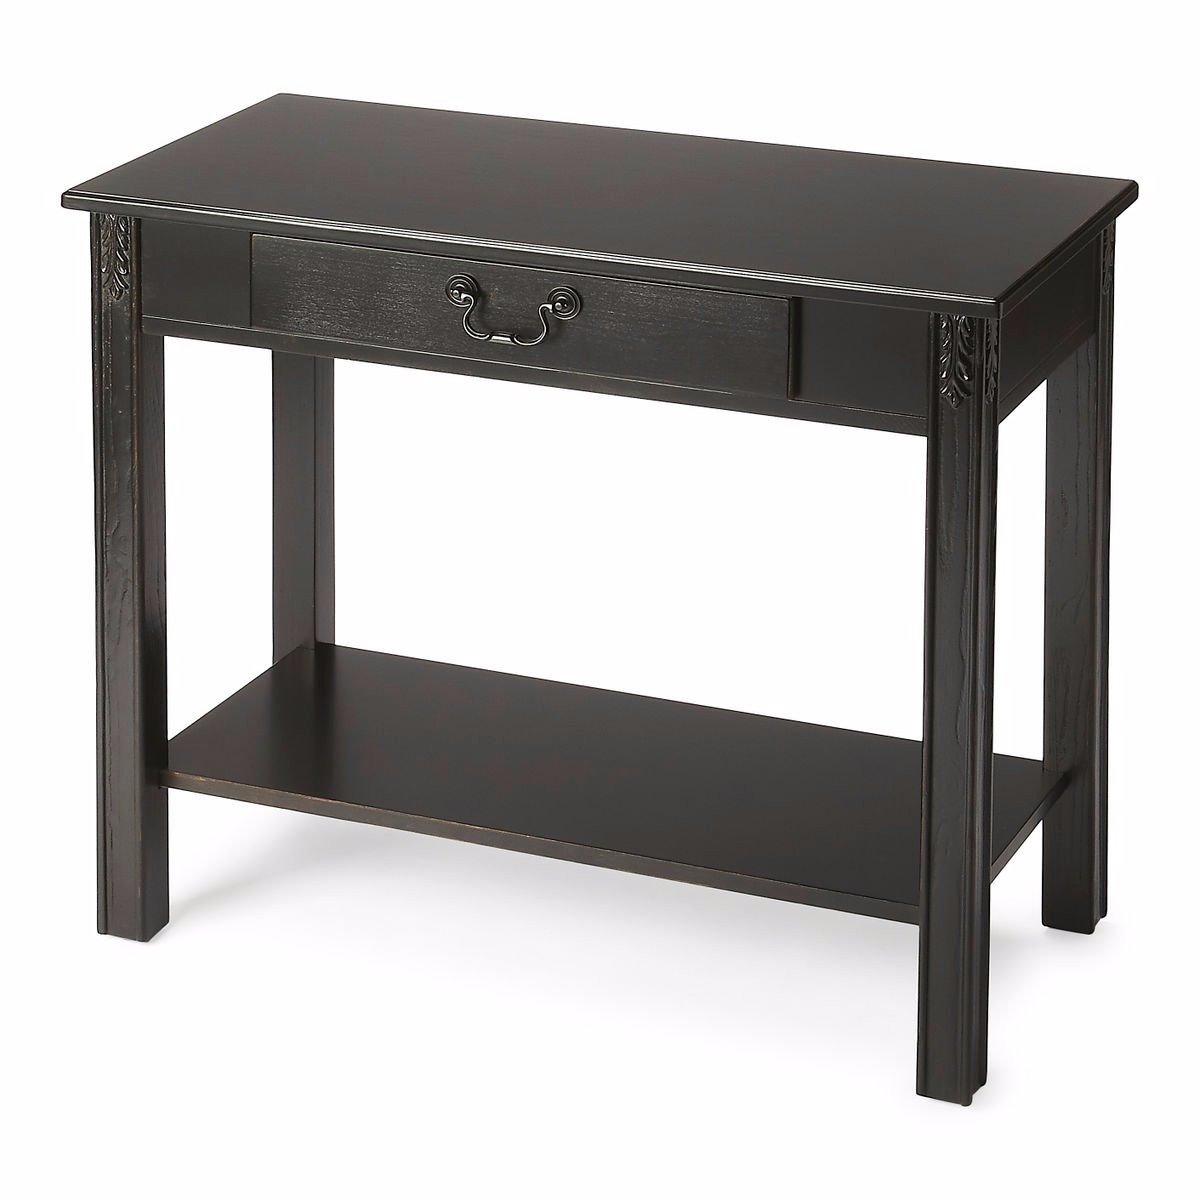 Ambiant Traditional CONSOLE TABLE Black